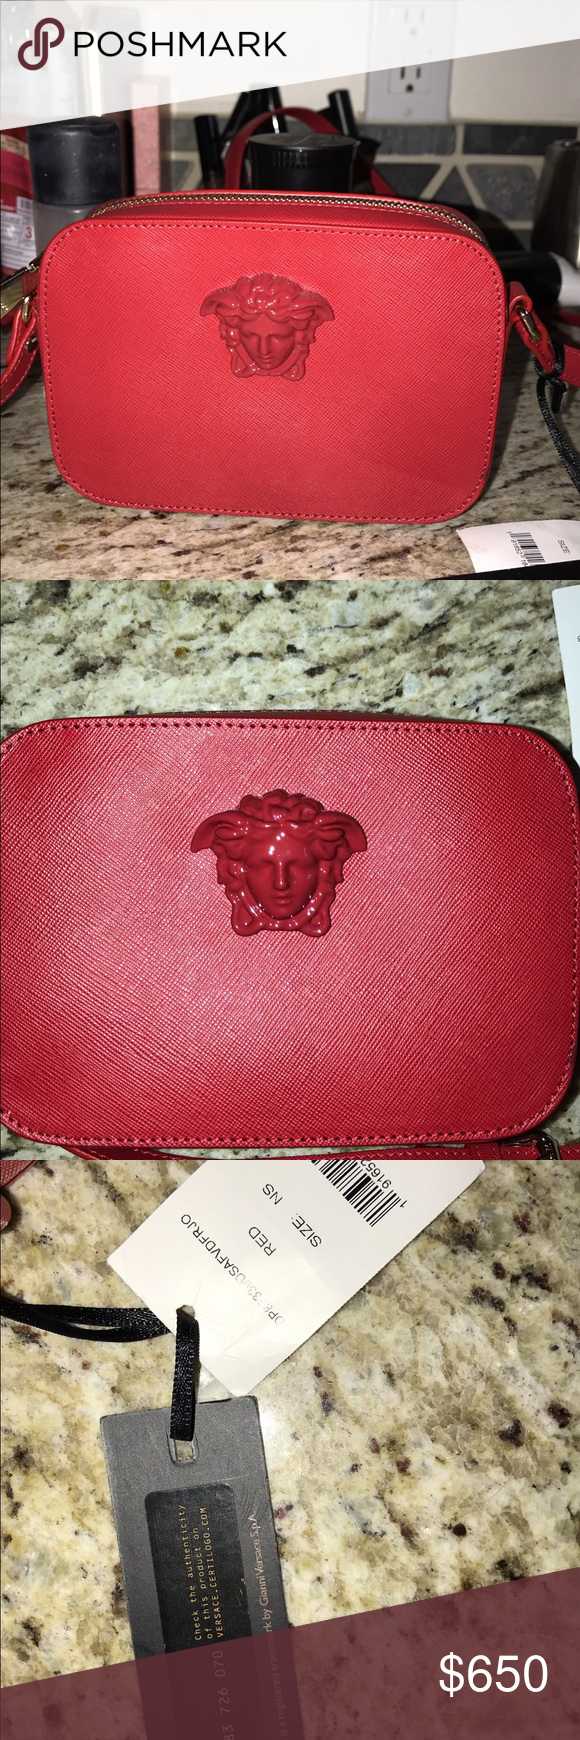 1aa72edac944 Versace Palazzo mini Crossbody bag Red Brand new Red Versace Palazzo mini Crossbody  bag. Never worn out